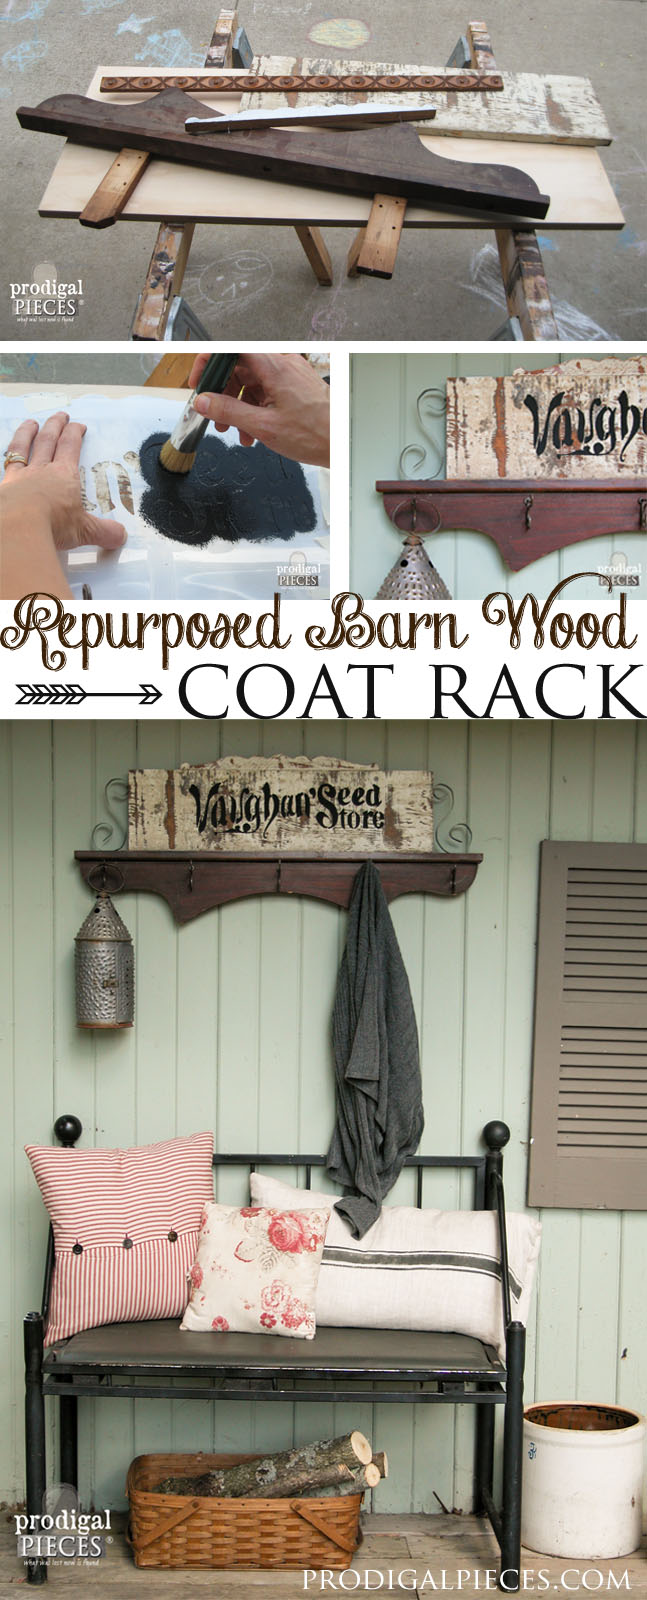 Create a repurposed coat rack using cast off barn wood and furniture pieces by Prodigal Pieces www.prodigalpieces.com #prodigalpieces